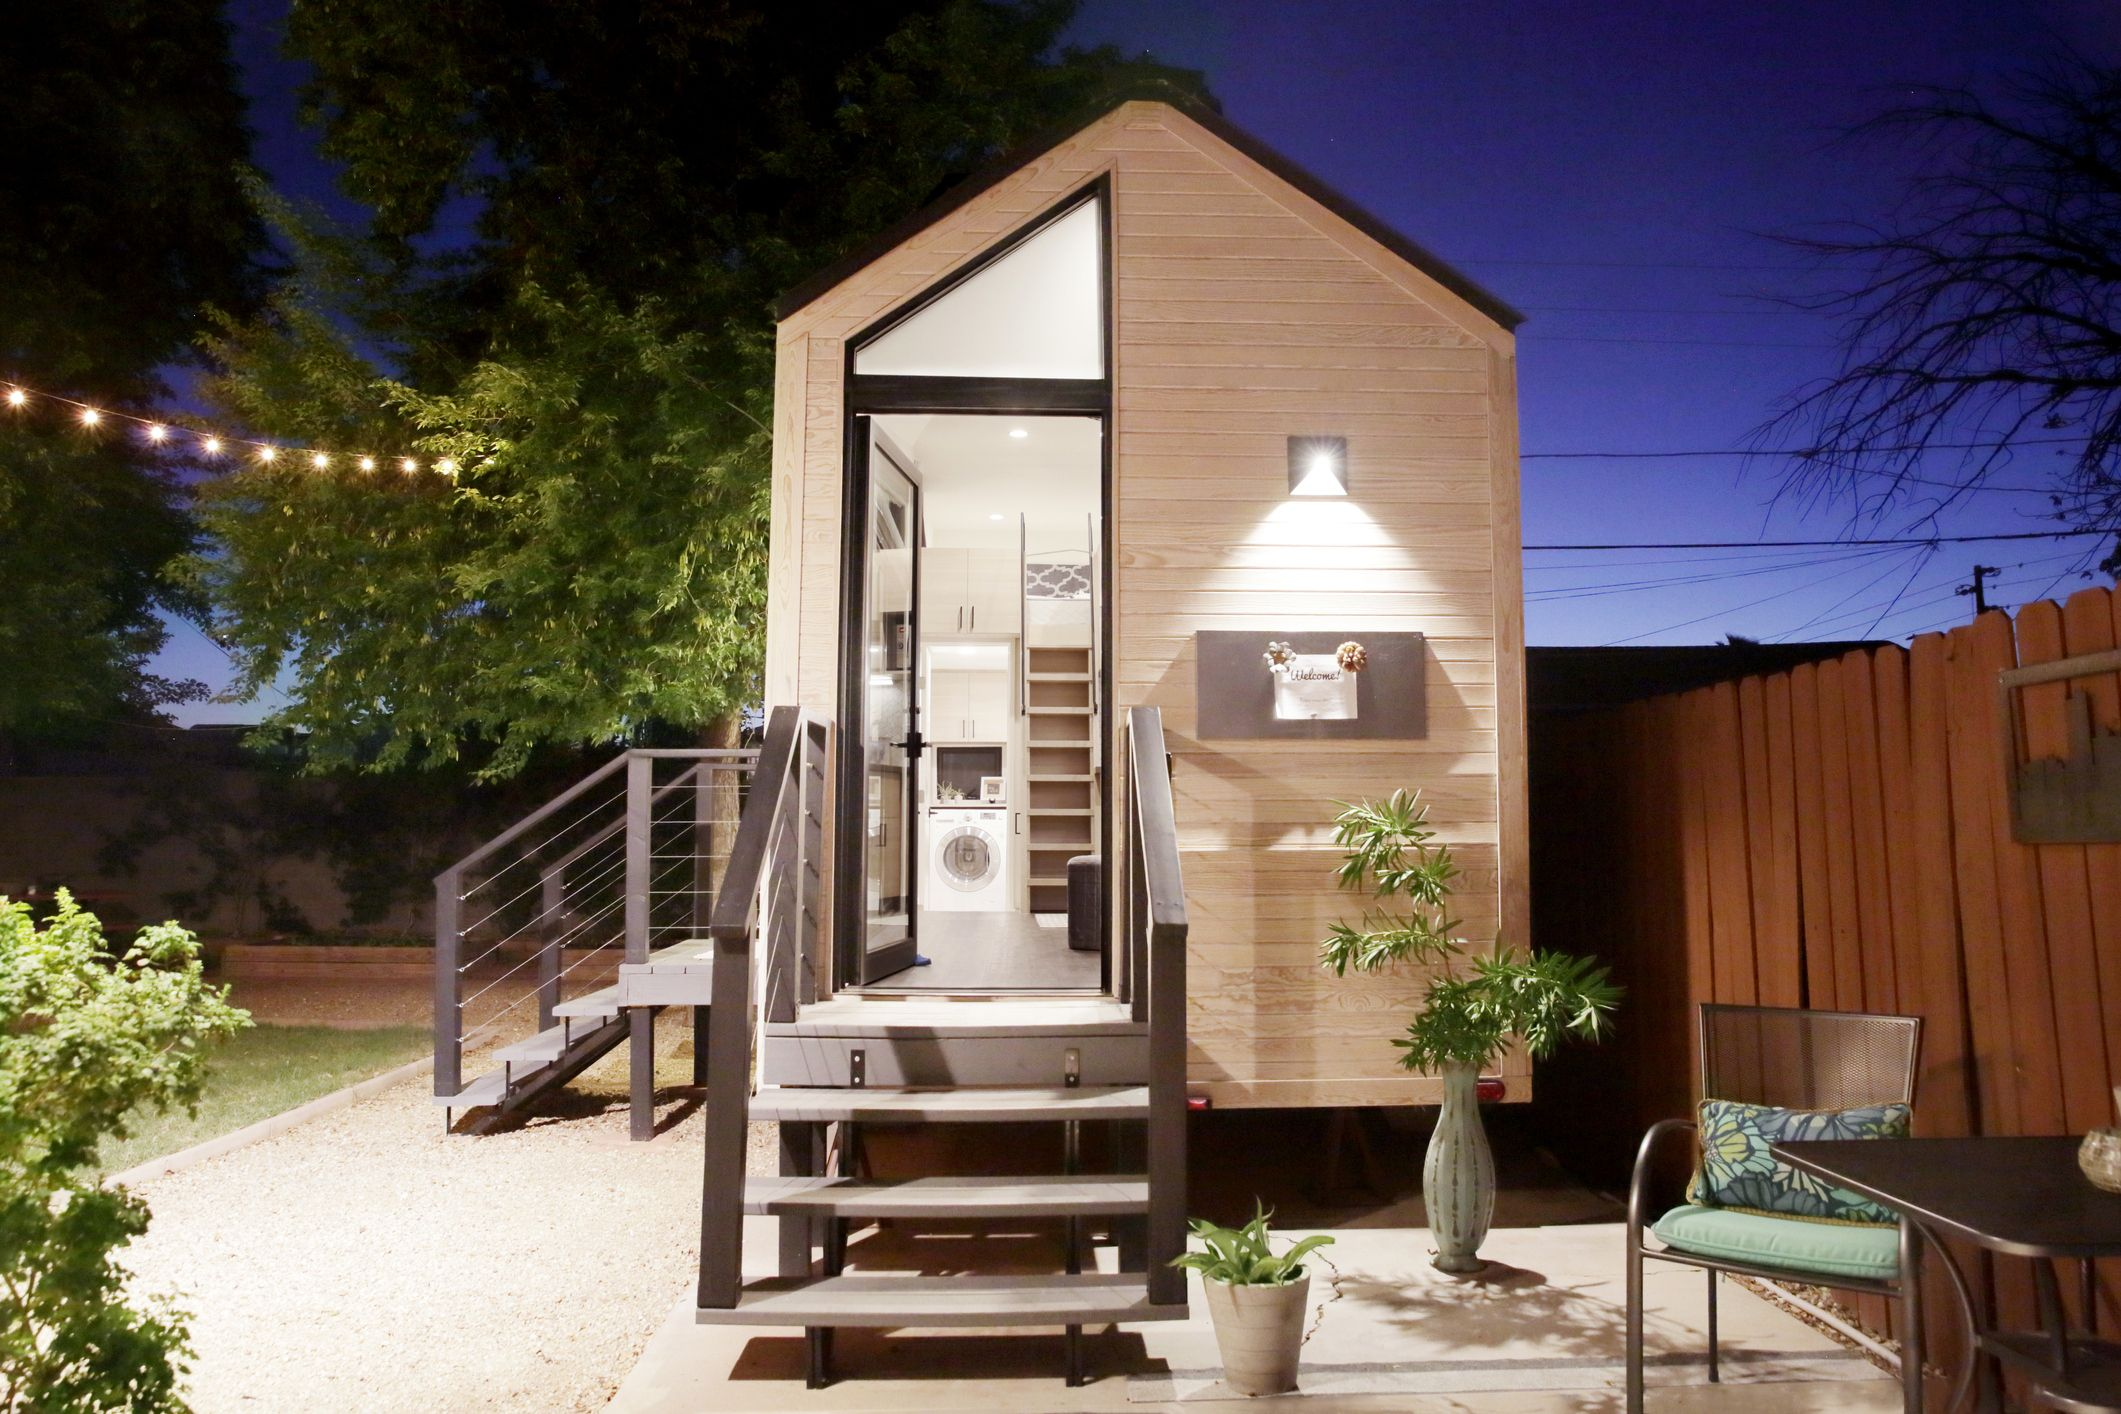 A Tiny House With Large Glass Windows, Sits In The Backyard At Night,  Surrounded